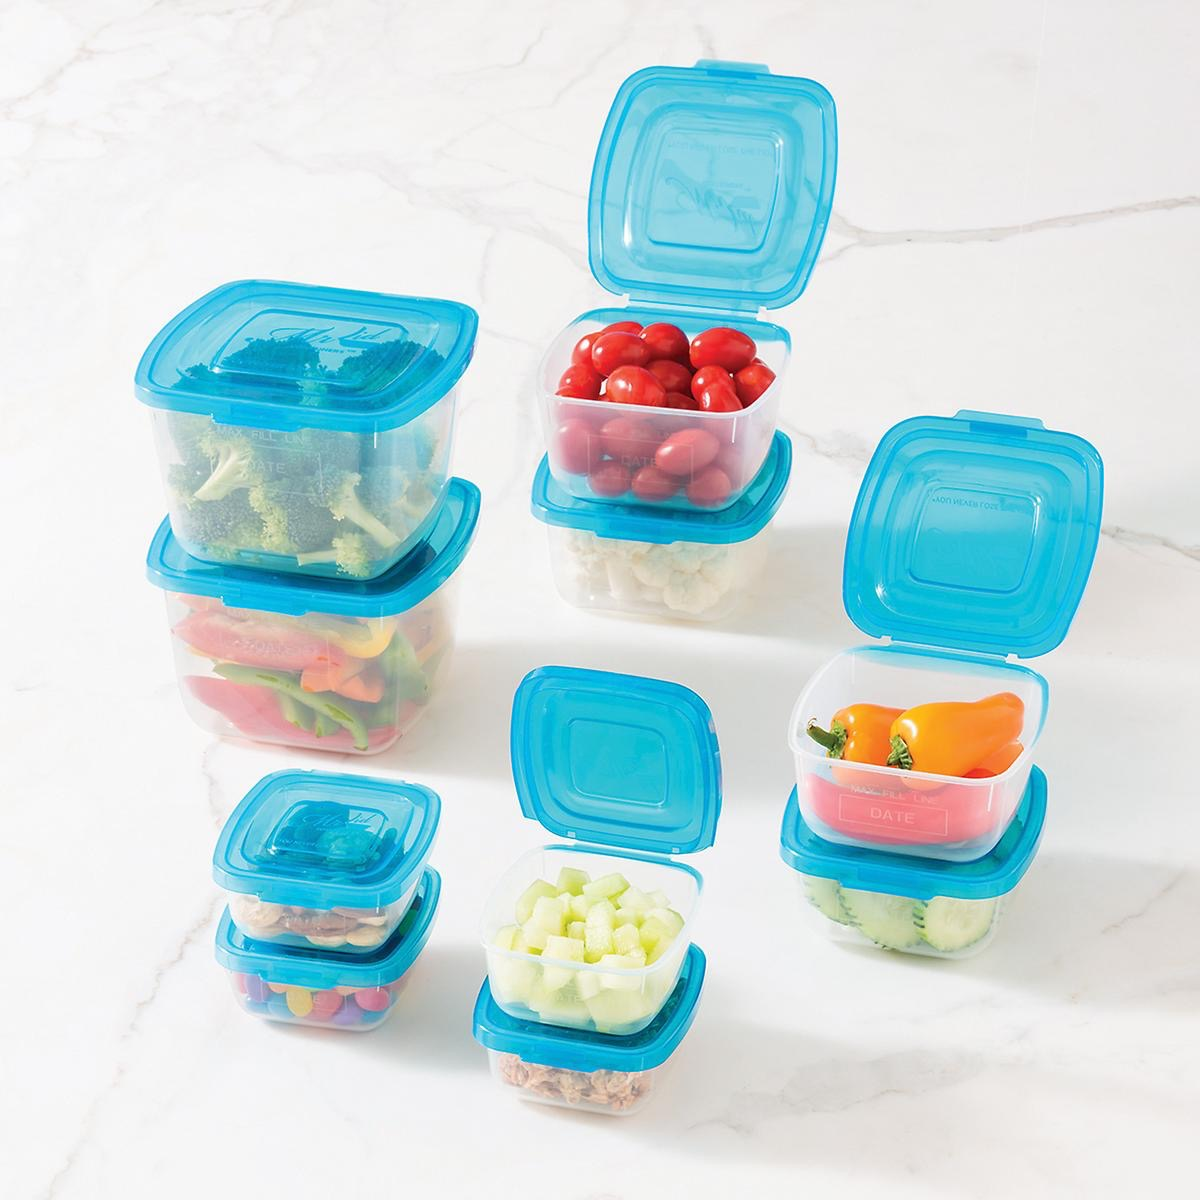 clear storage boxes with blue lids, cheap meal prep containers